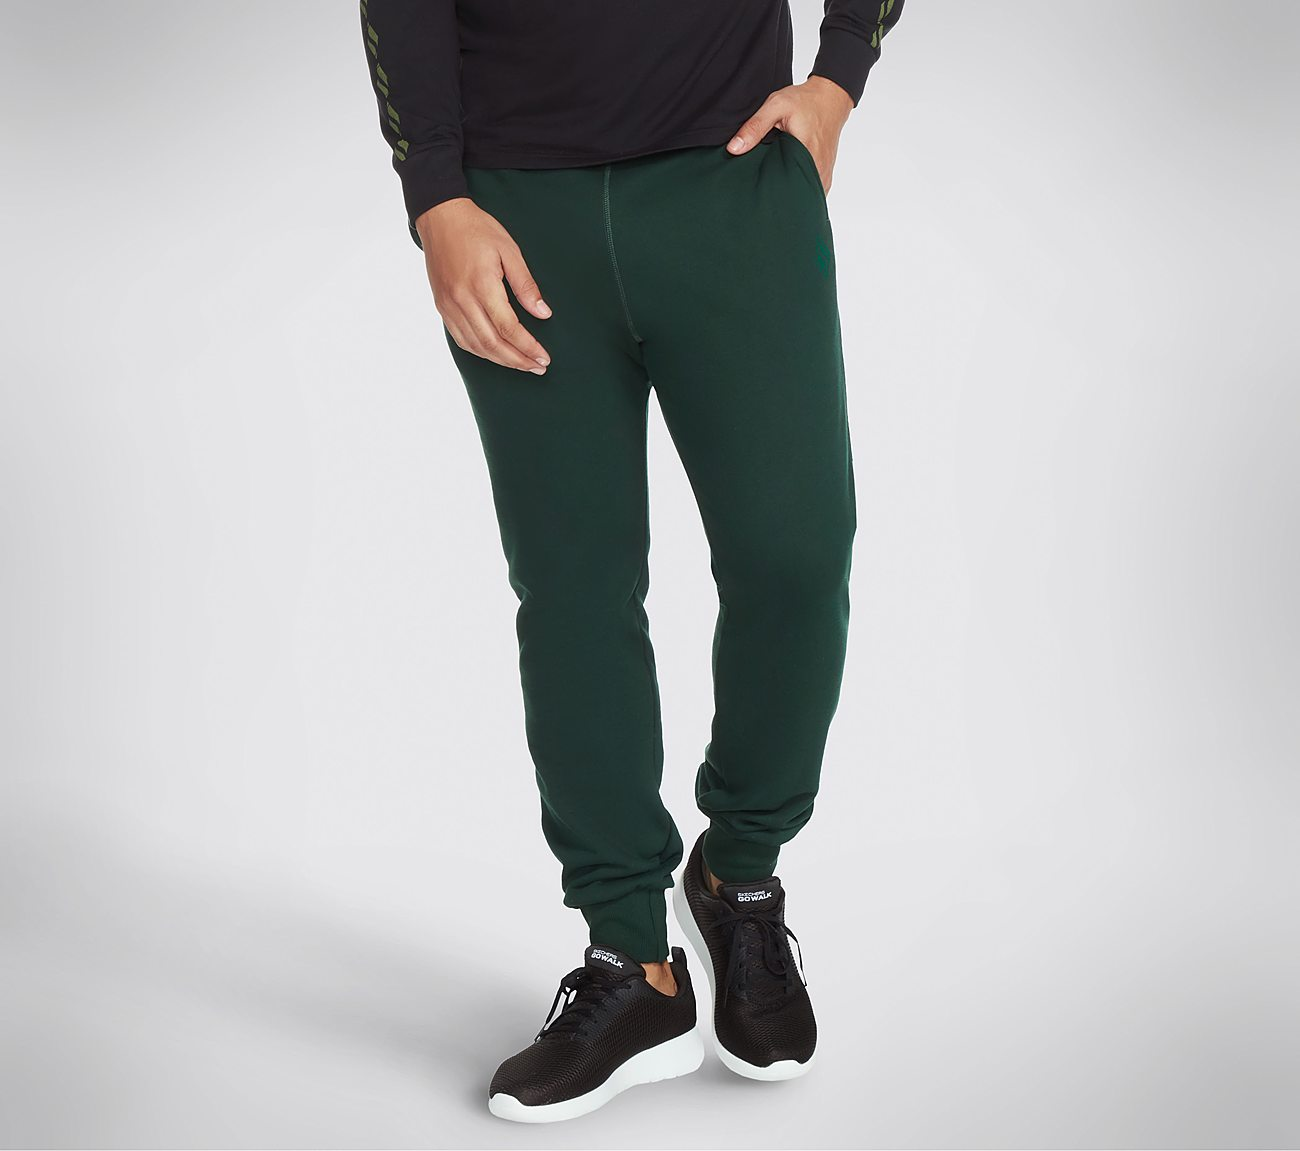 Skechers Apparel Diamond Jogger Pant